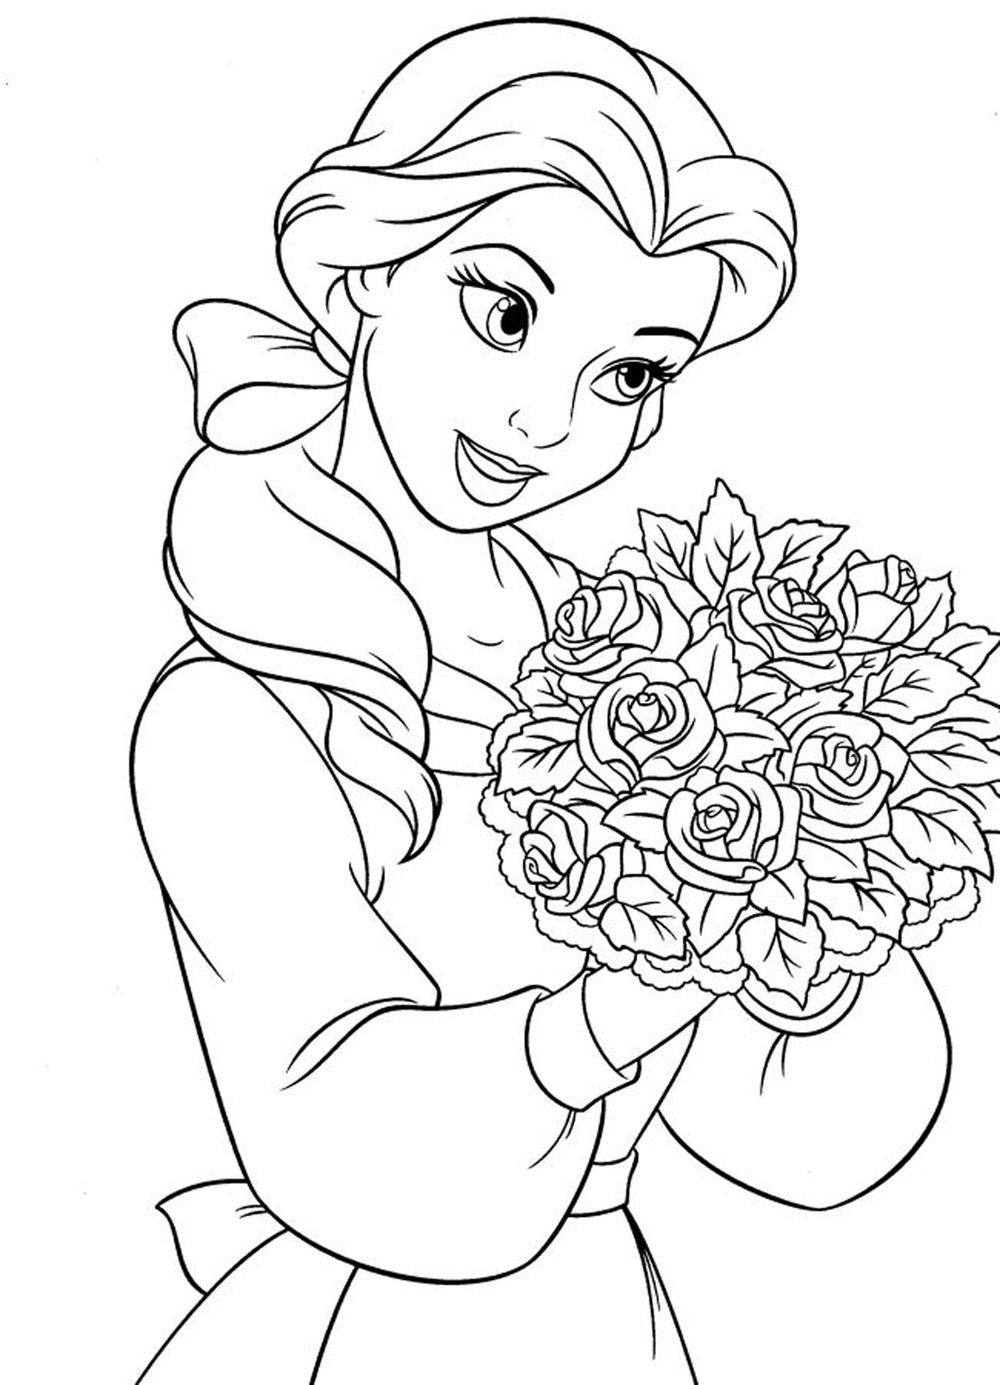 Disney Princess Coloring Book Belle Coloring Pages Disney Coloring Sheets Disney Princess Coloring Pages